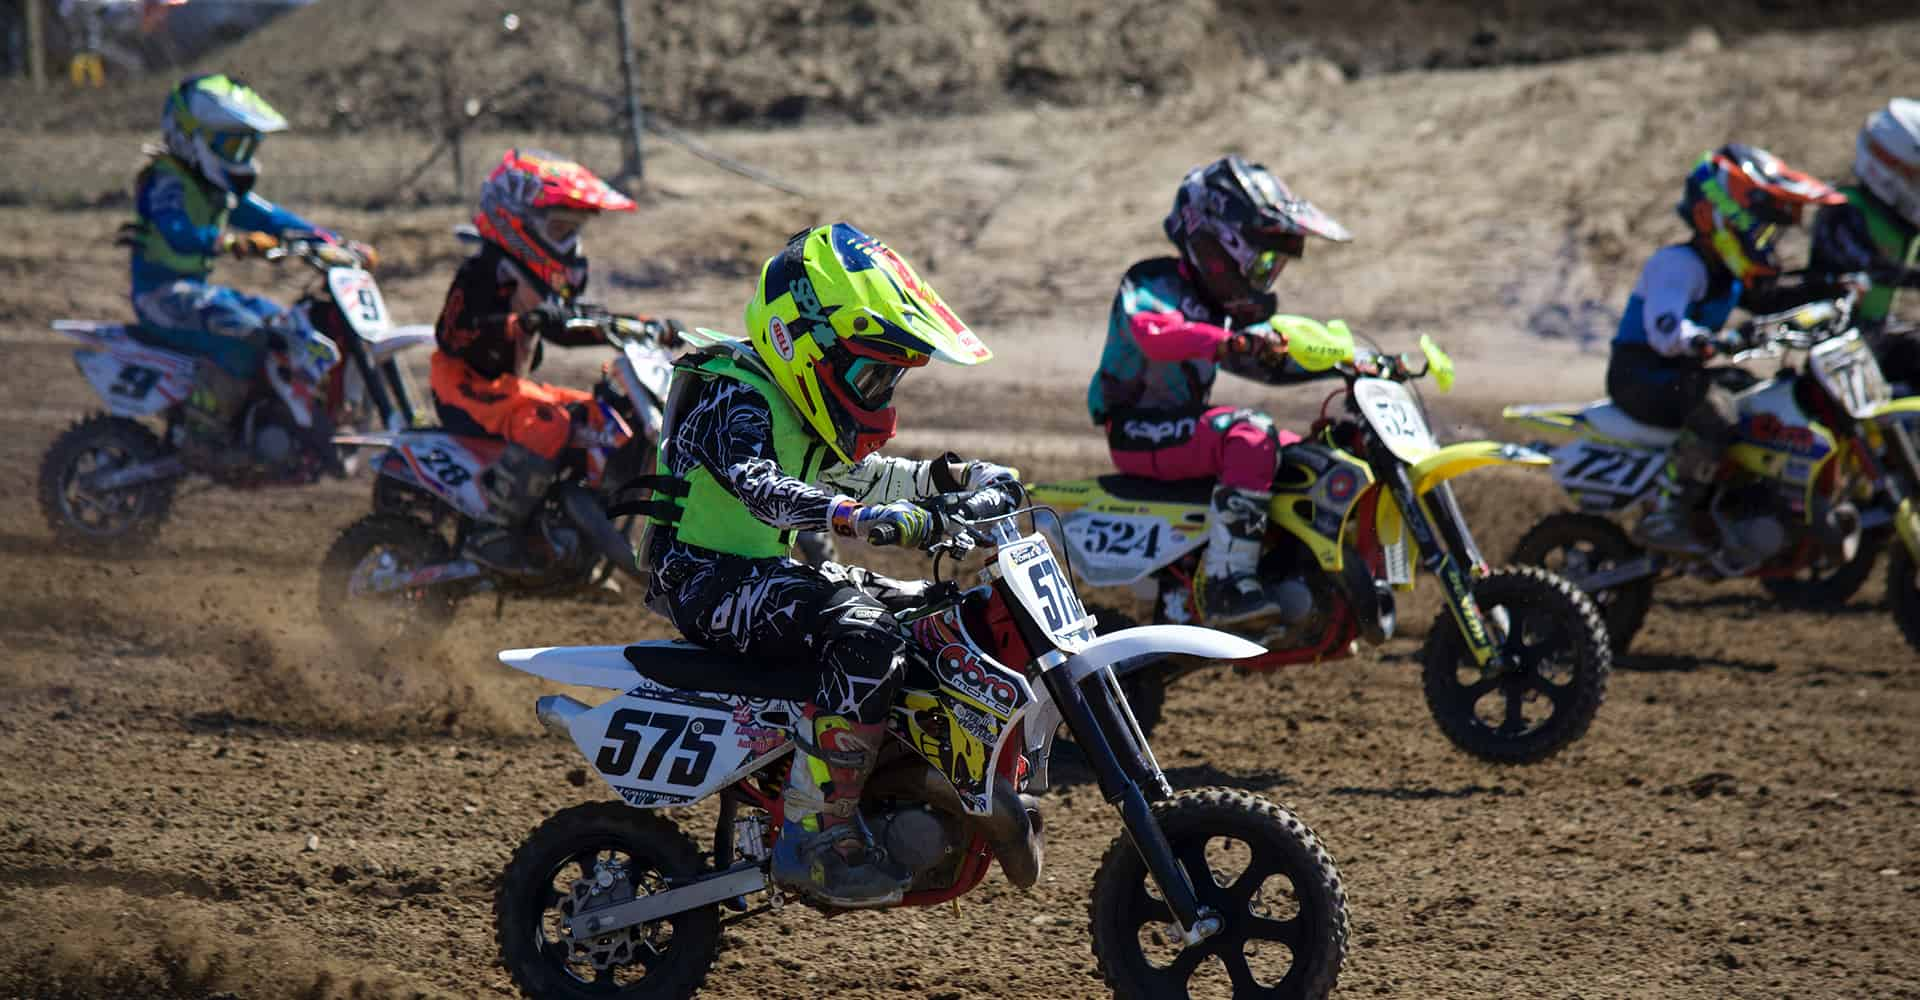 8 Best Electric Dirt Bikes for Kids Reviewed [2019]   Hobby Help